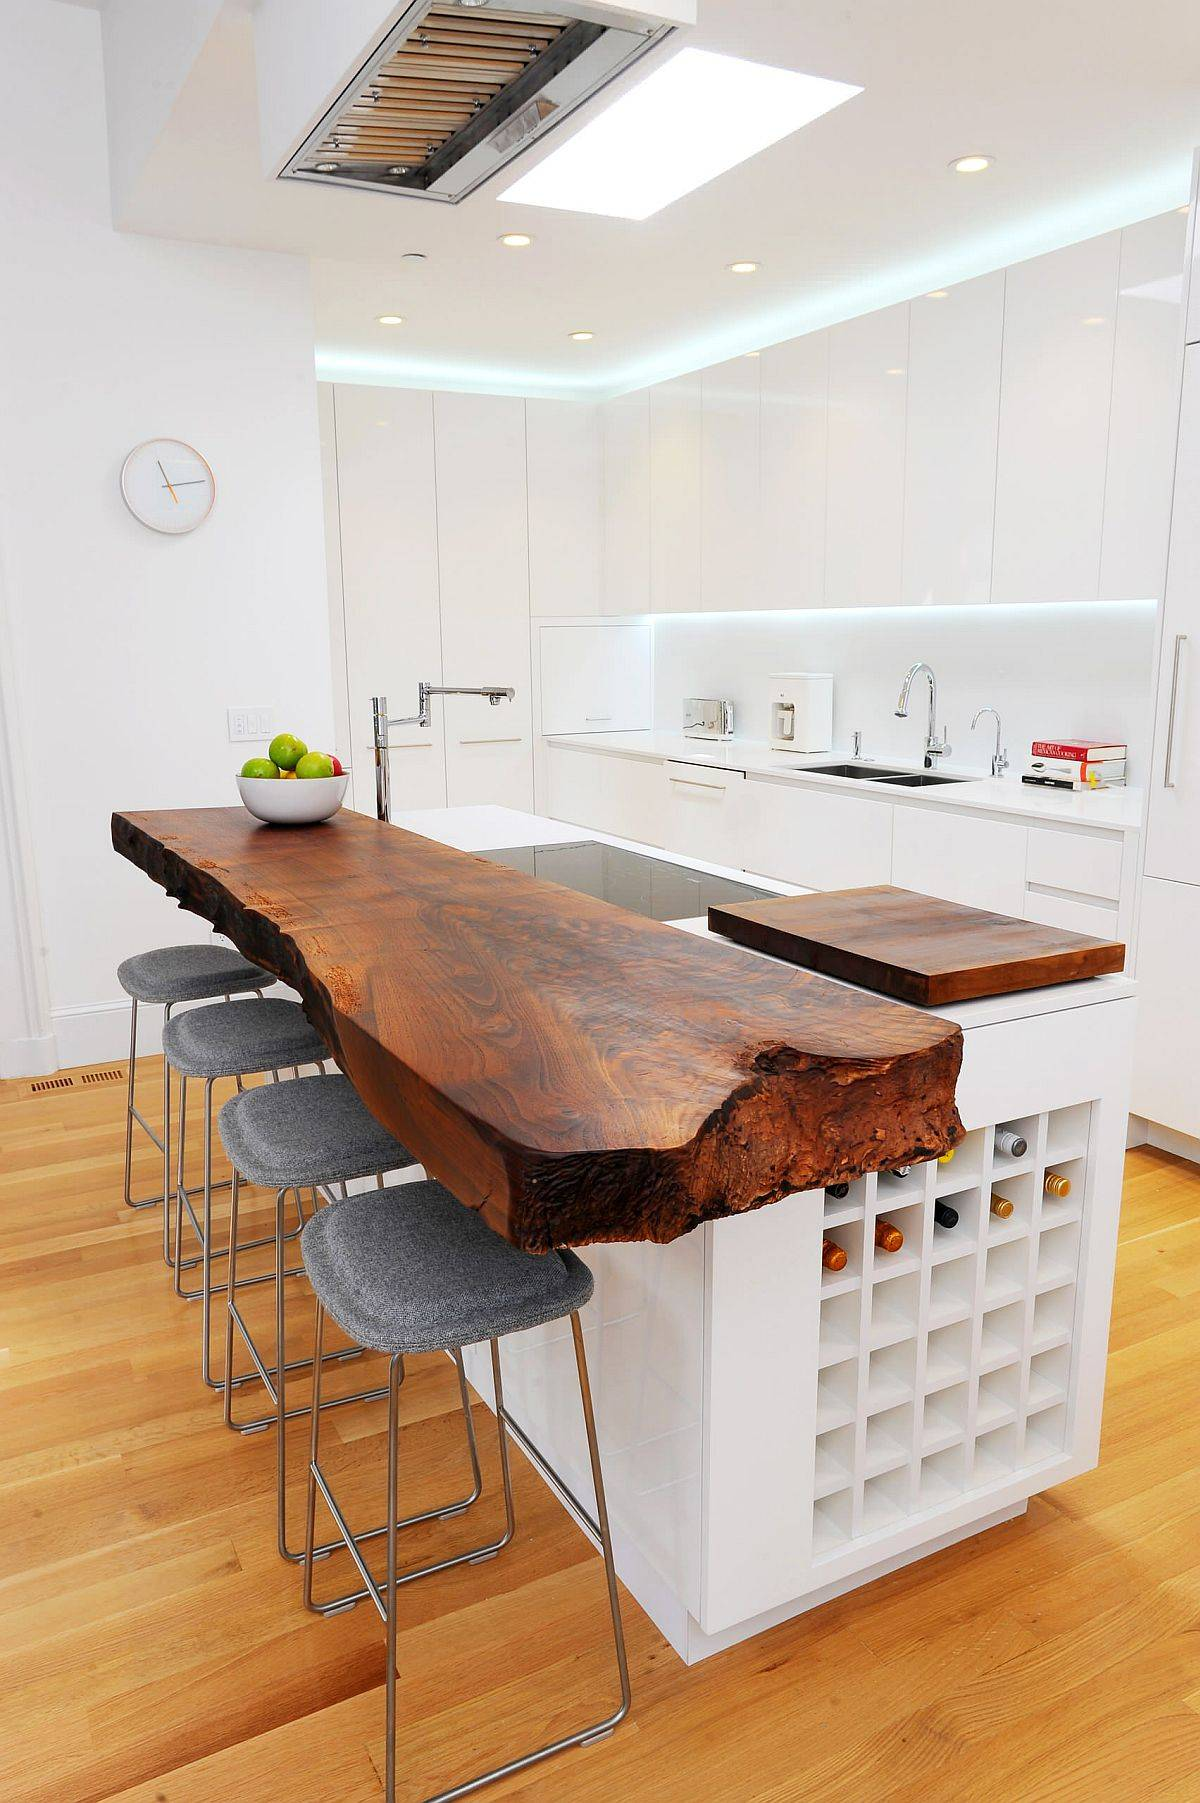 Polished-contemporary-kitchen-in-white-and-wood-with-a-farbulous-live-edge-breakfast-bar-55121